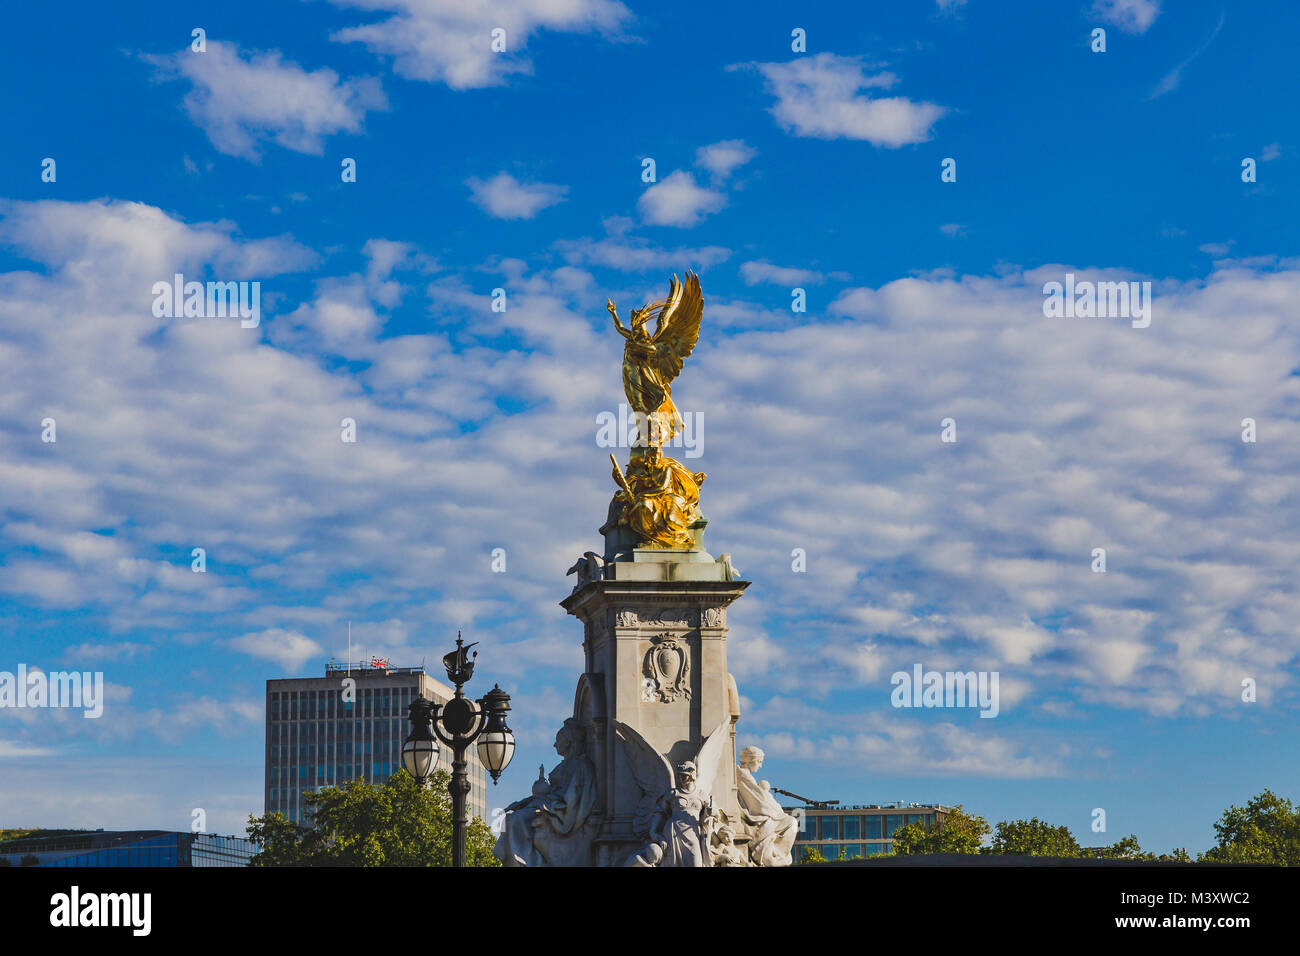 LONDON, UNITED KINGDOM - August, 21th, 2015: Victoria Memorial in front of Buckingham Palace - Stock Image